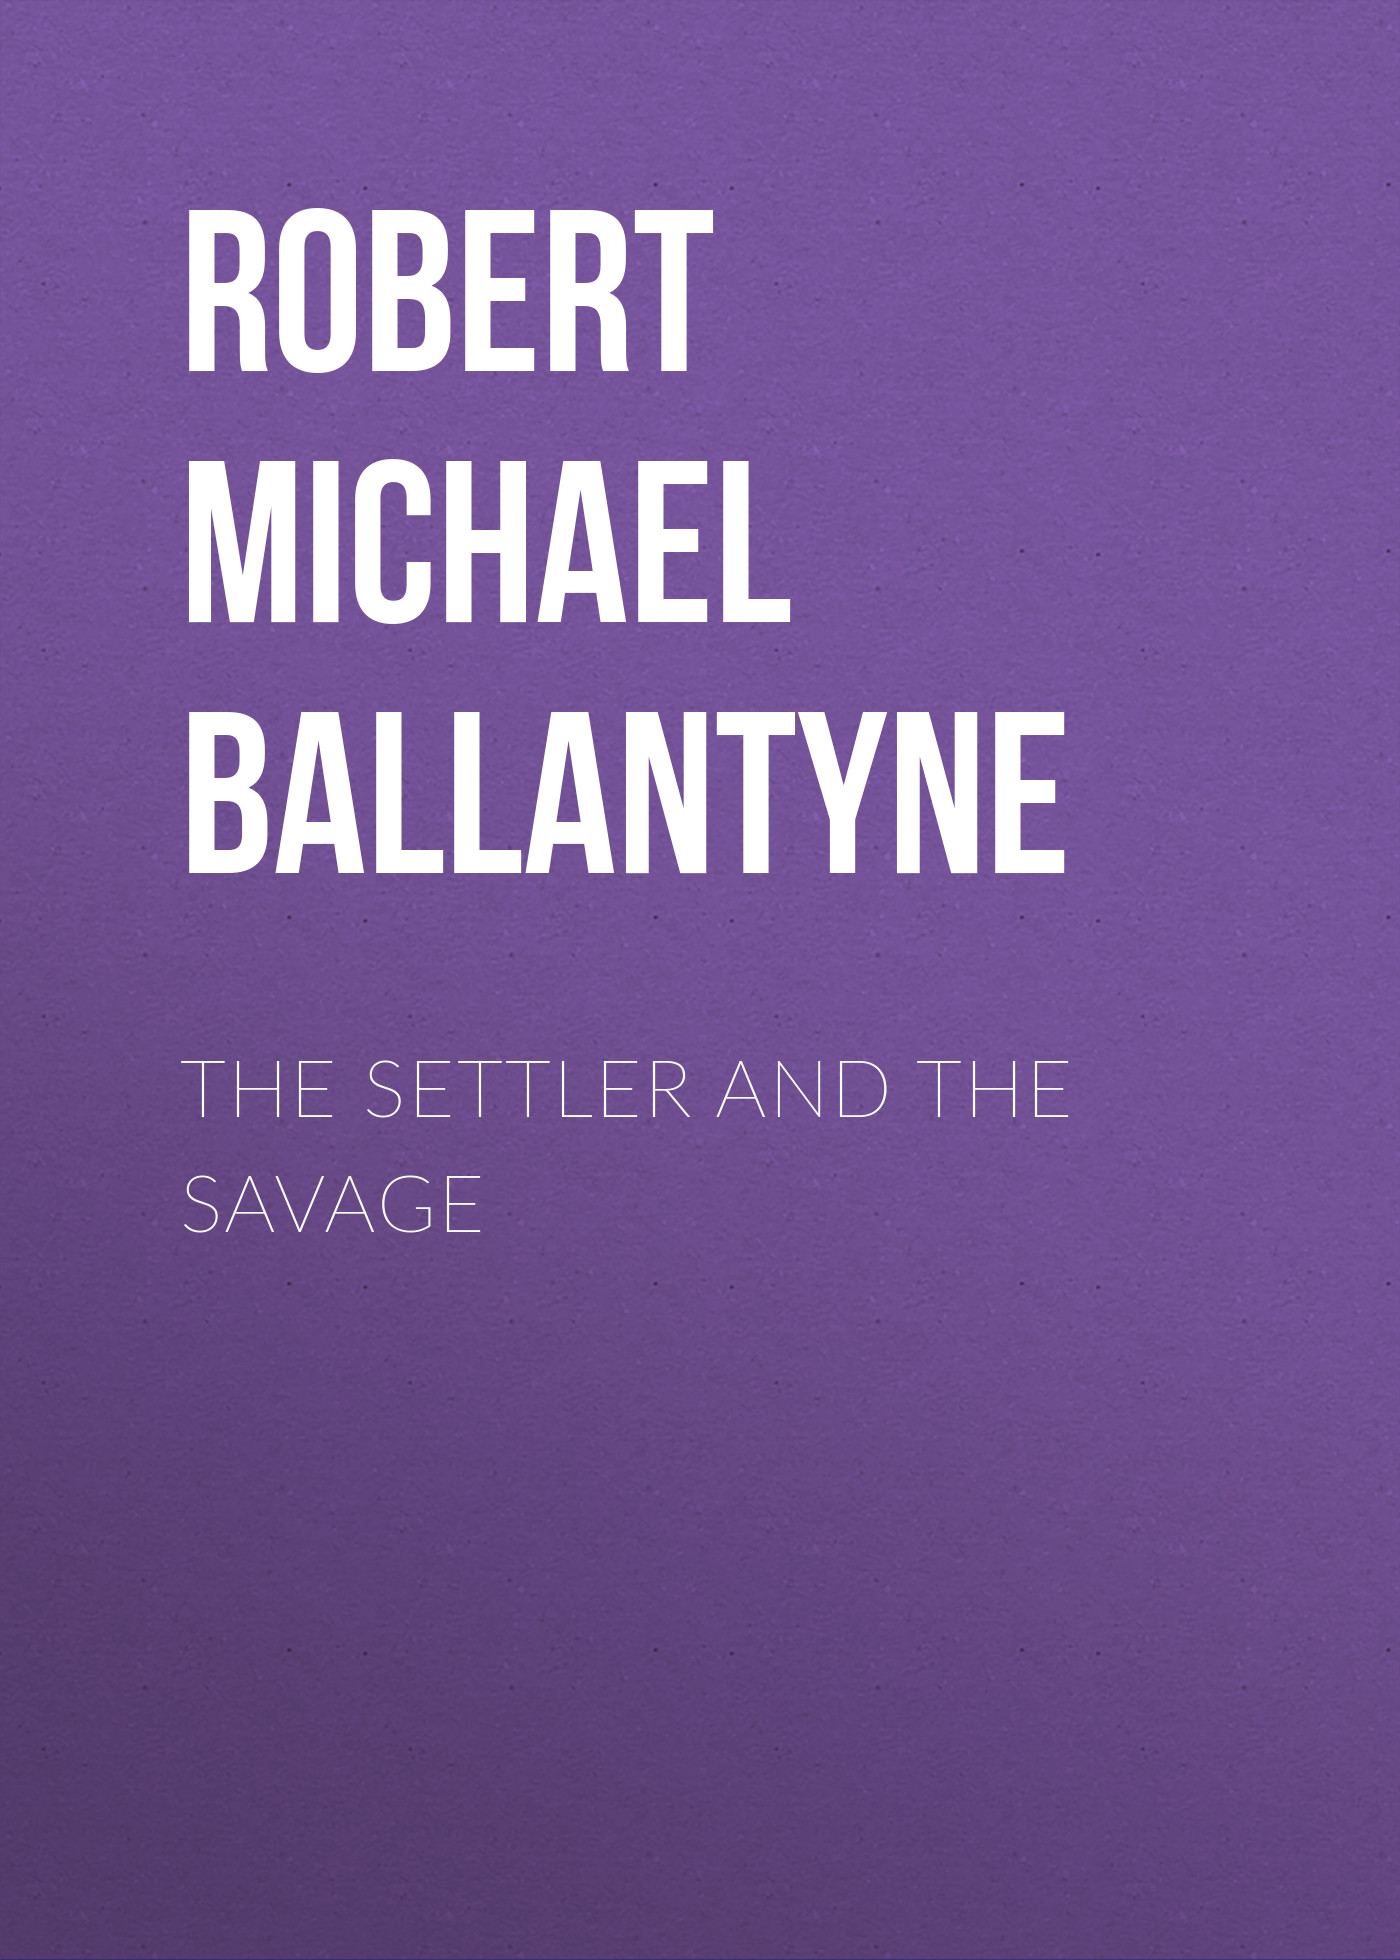 лучшая цена Robert Michael Ballantyne The Settler and the Savage